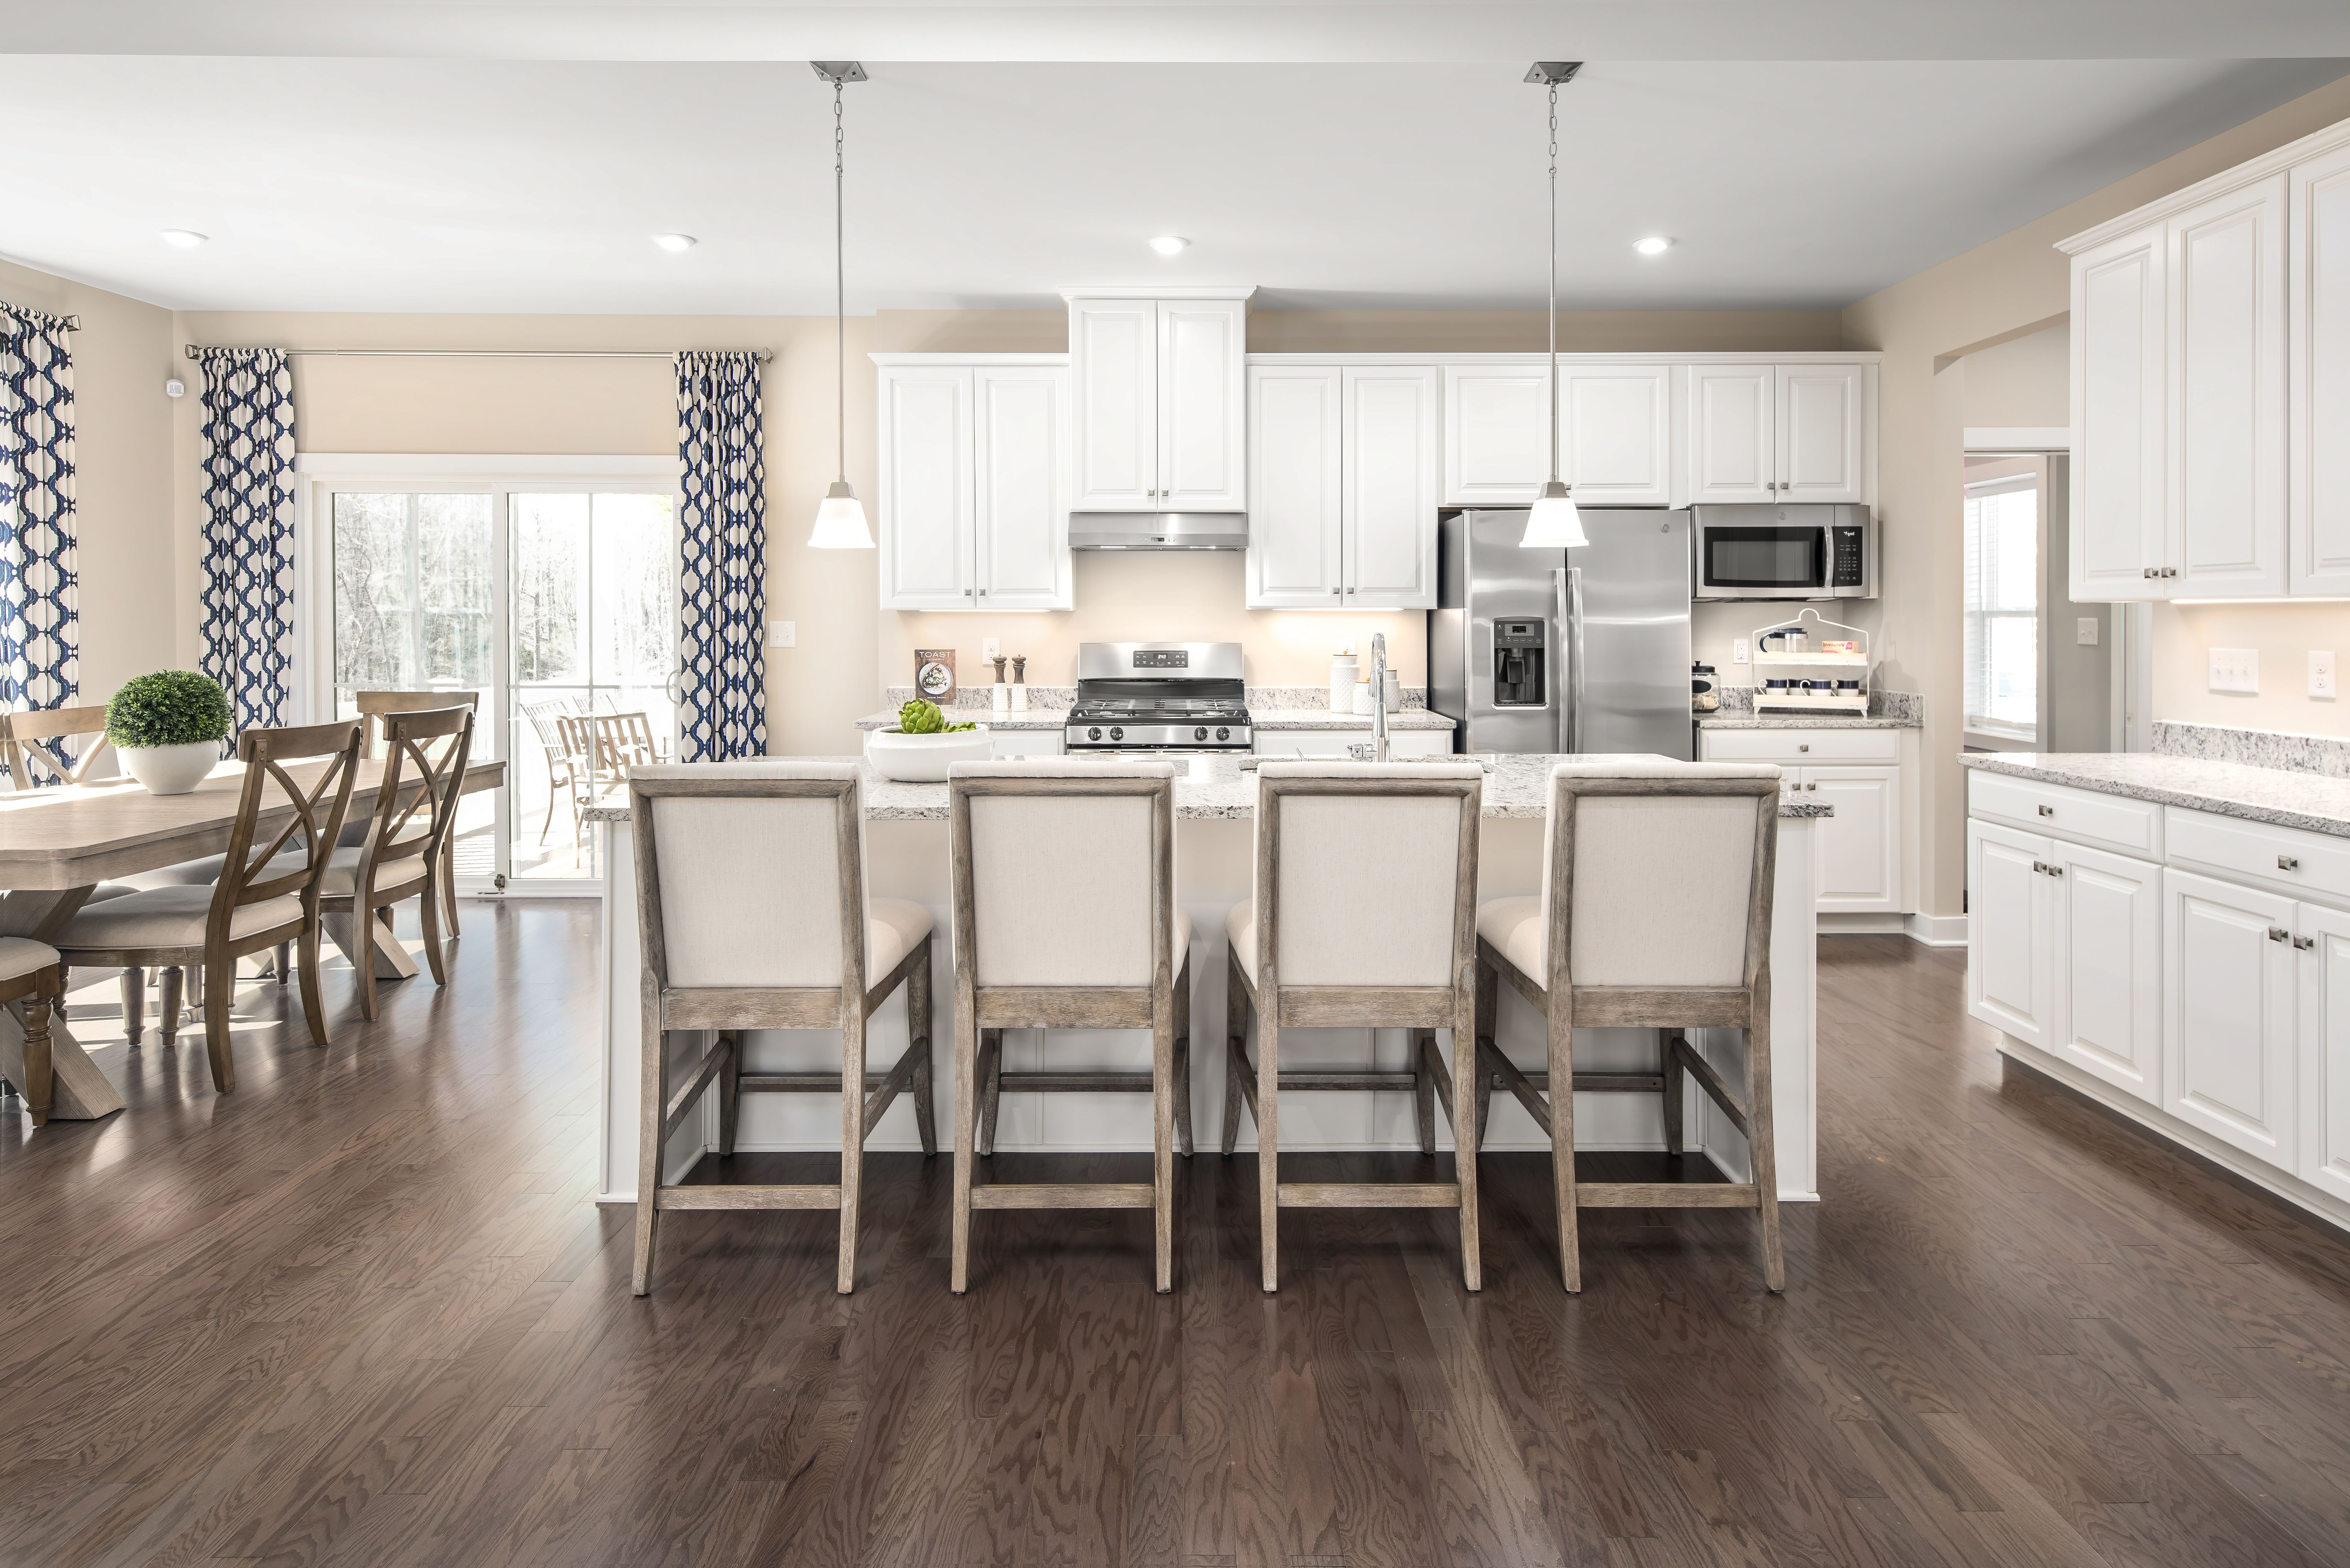 Kitchen featured in the Powell By Ryan Homes in York, PA